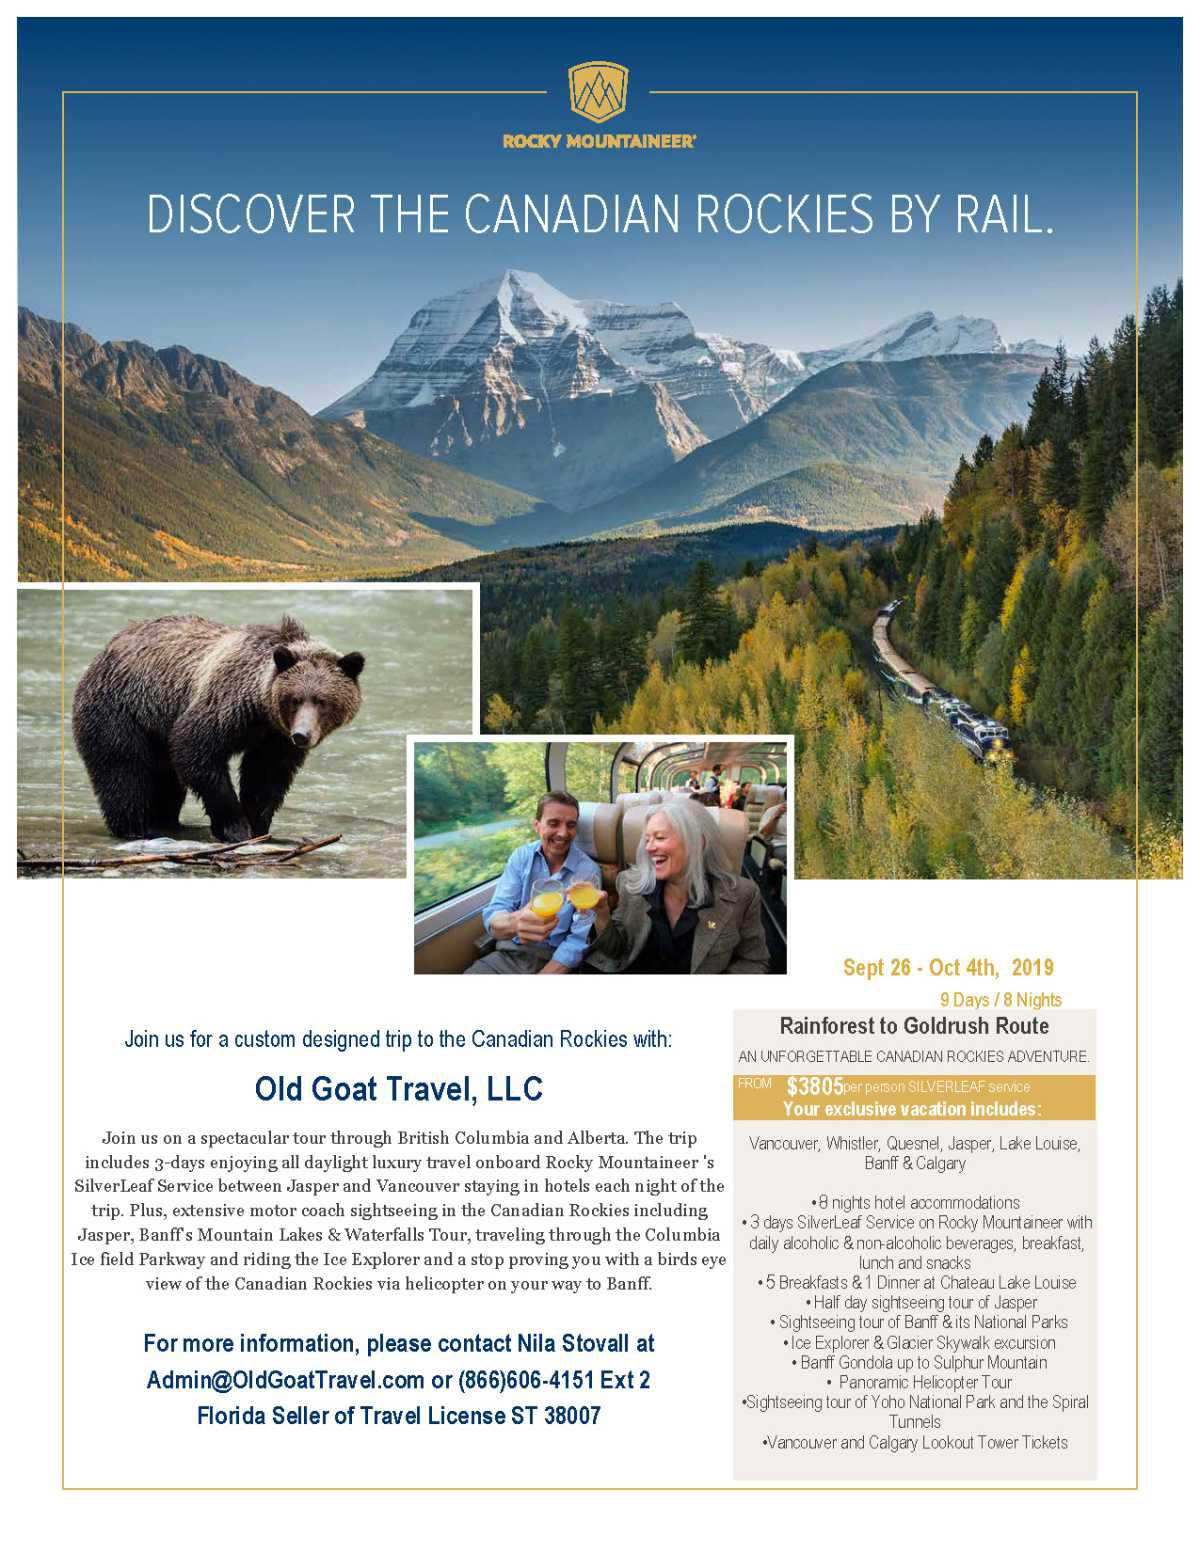 Discover the Canadian Rockies with the Old Goat!